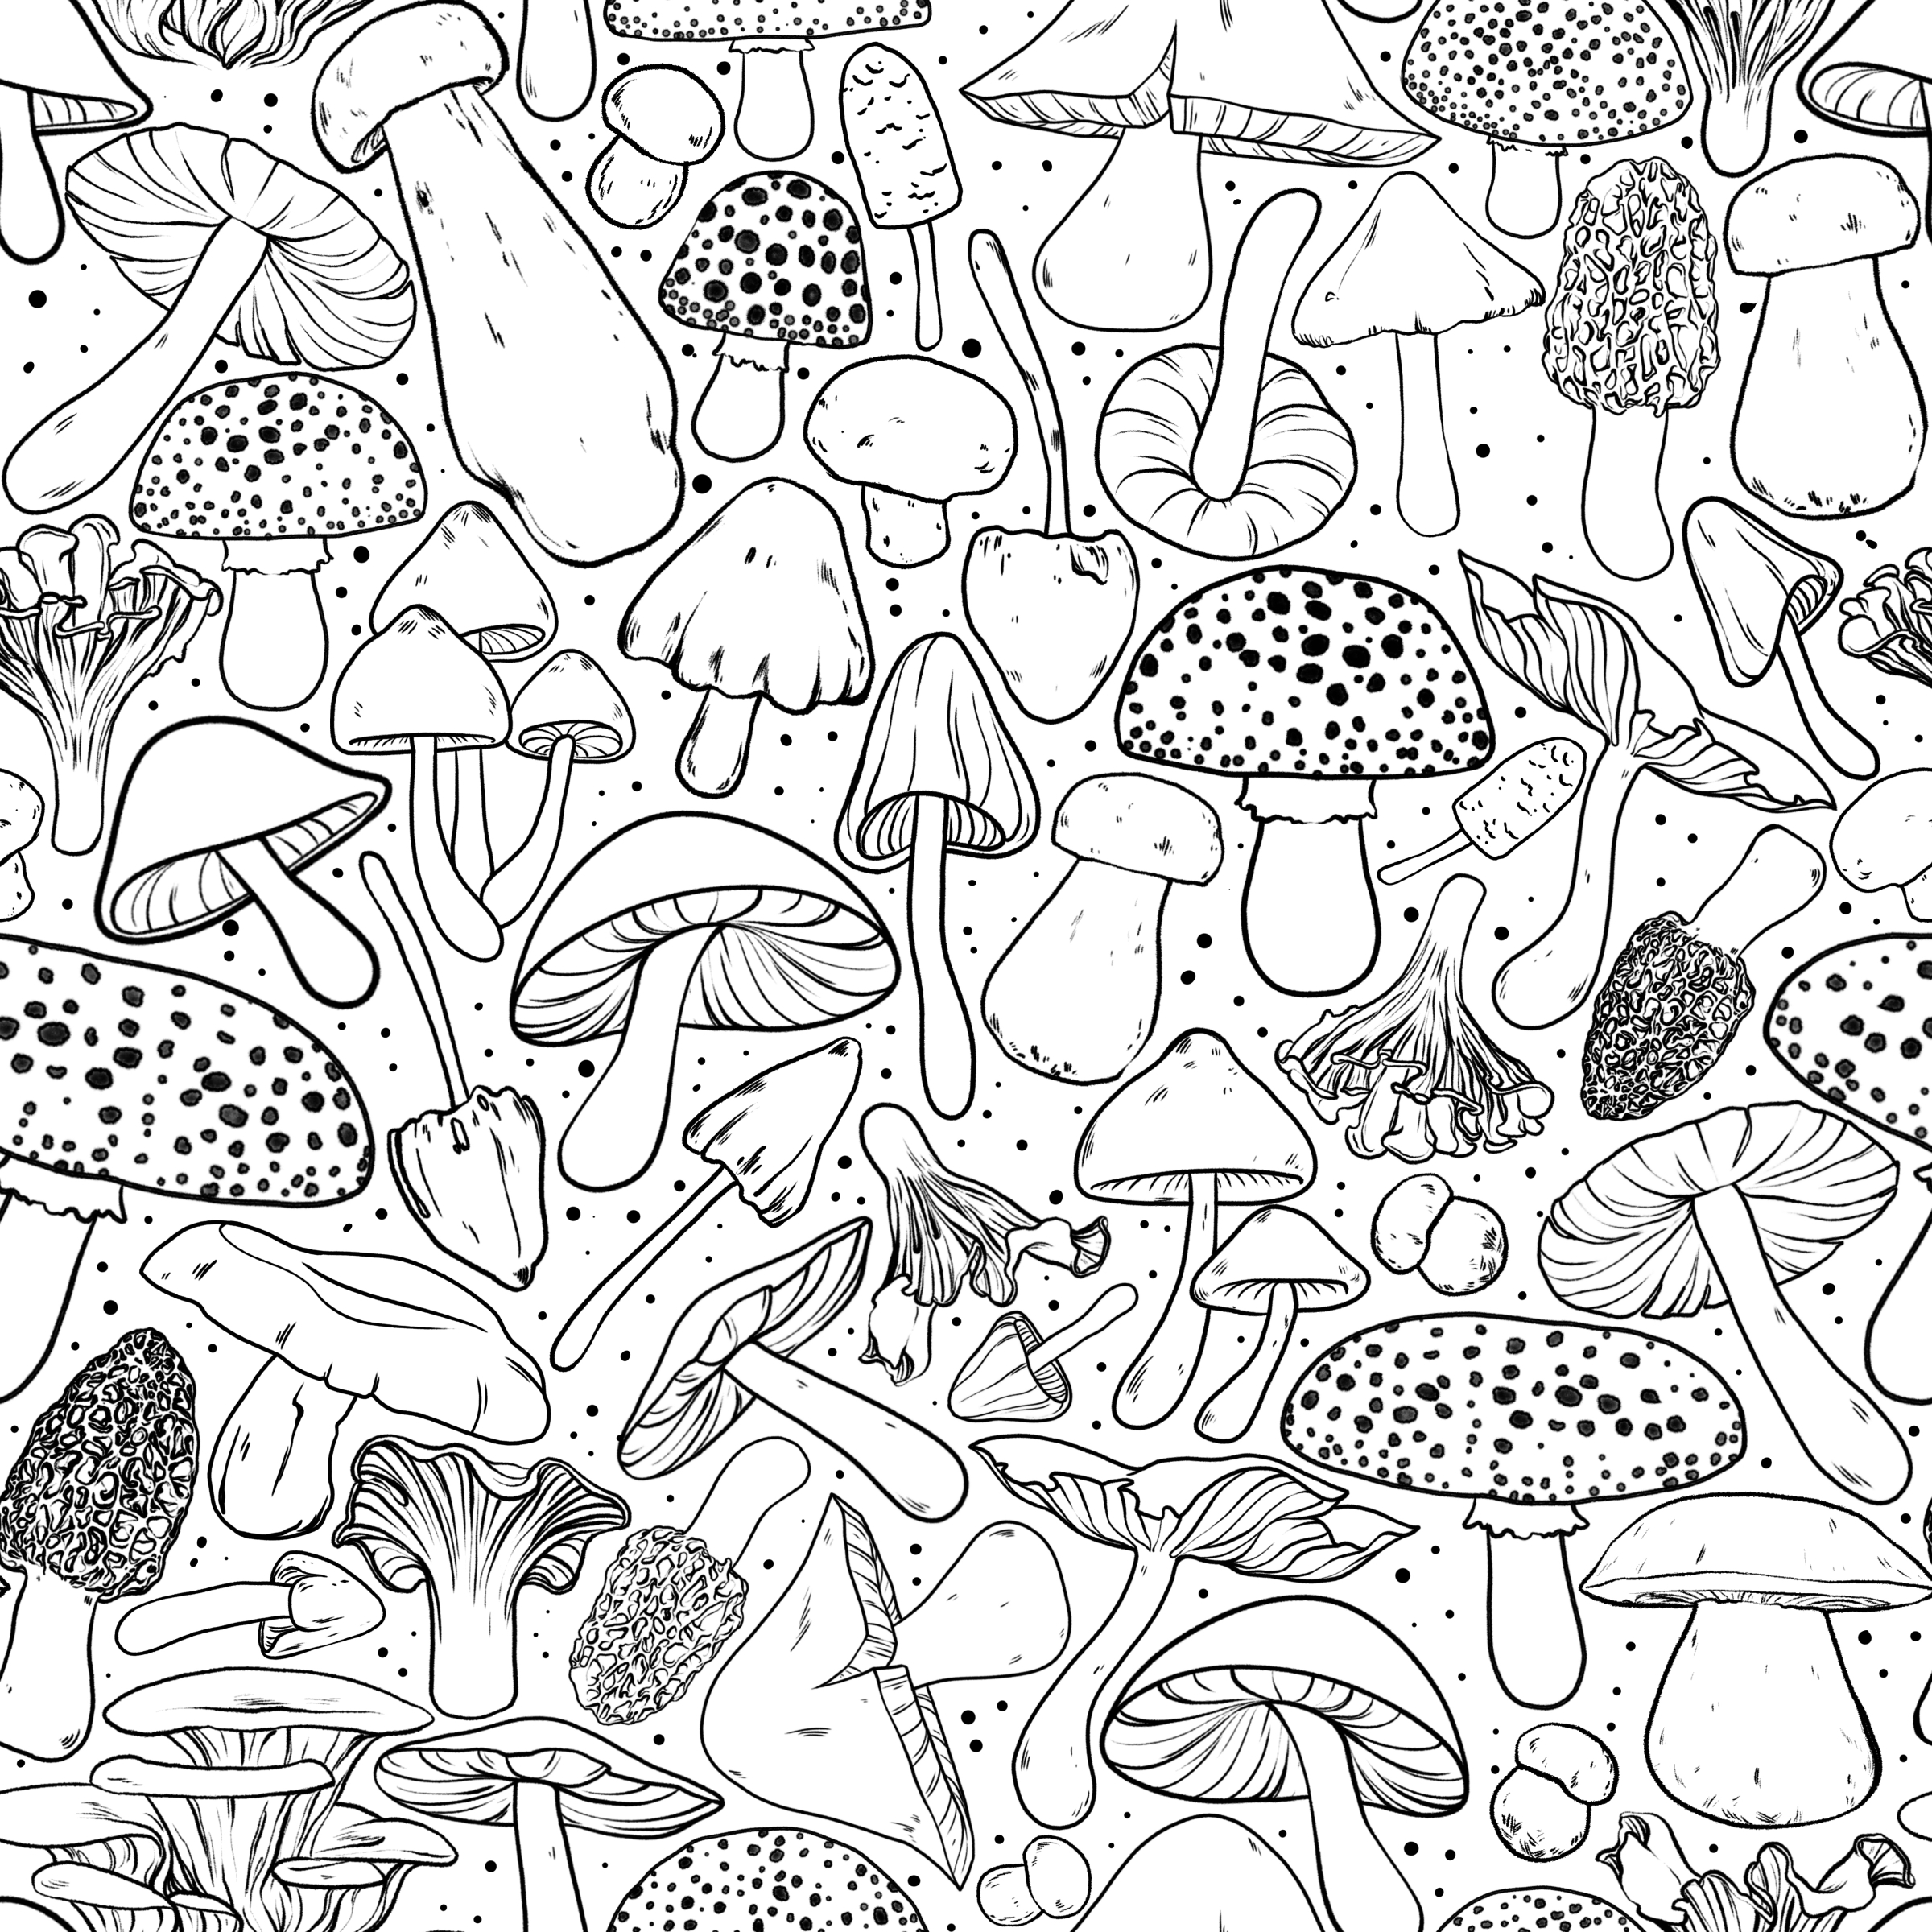 The Lake Black and White Coloring BookDesign Challenge - My Mushrooms design came in 7th in this contest that was partnered with Spoonflower. You can purchase it here!